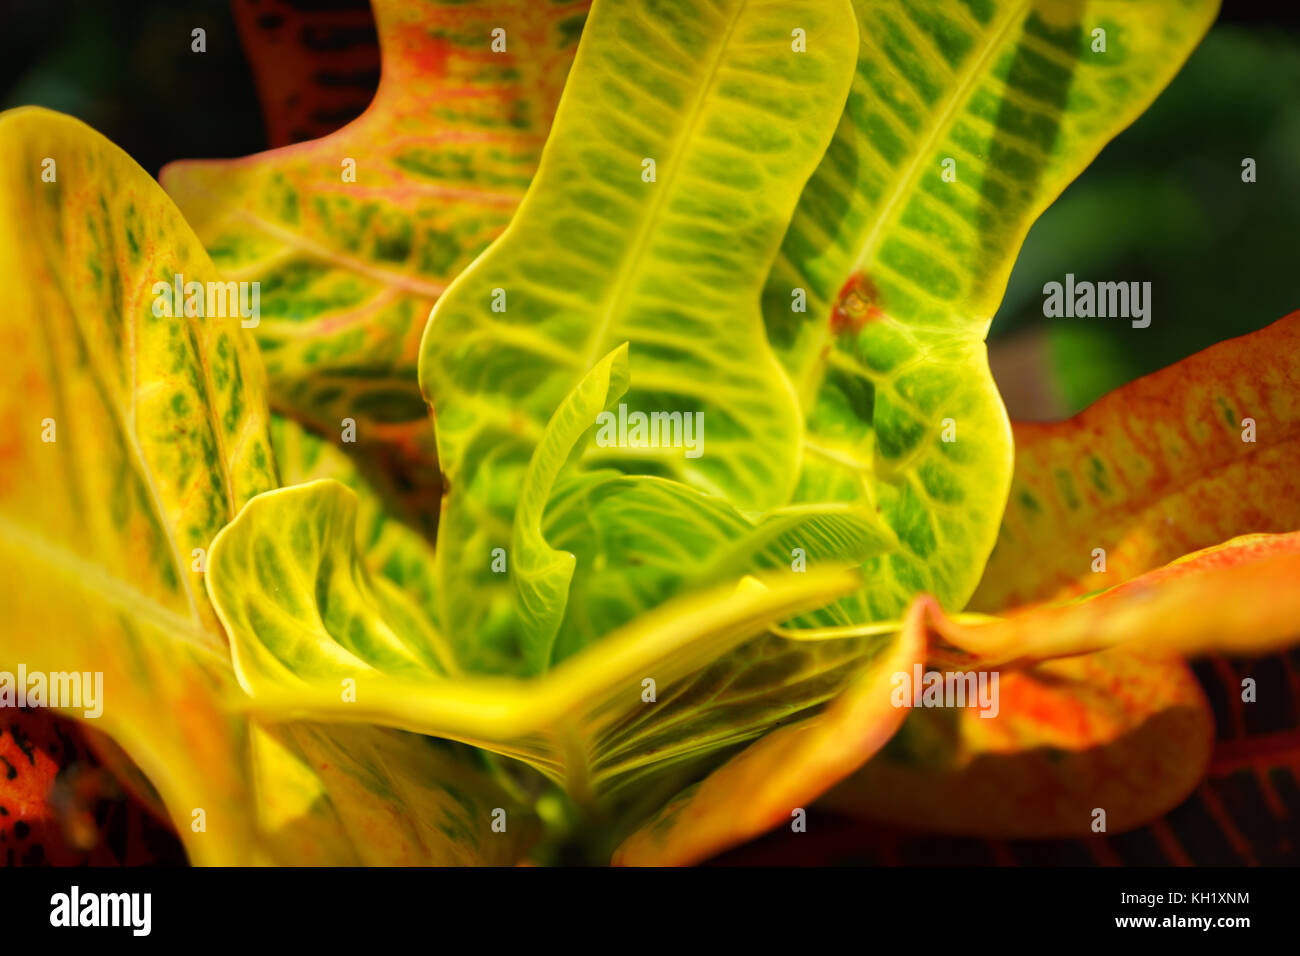 exotic plant / leaves with psychedelic colors close-up - abstract image - Stock Image